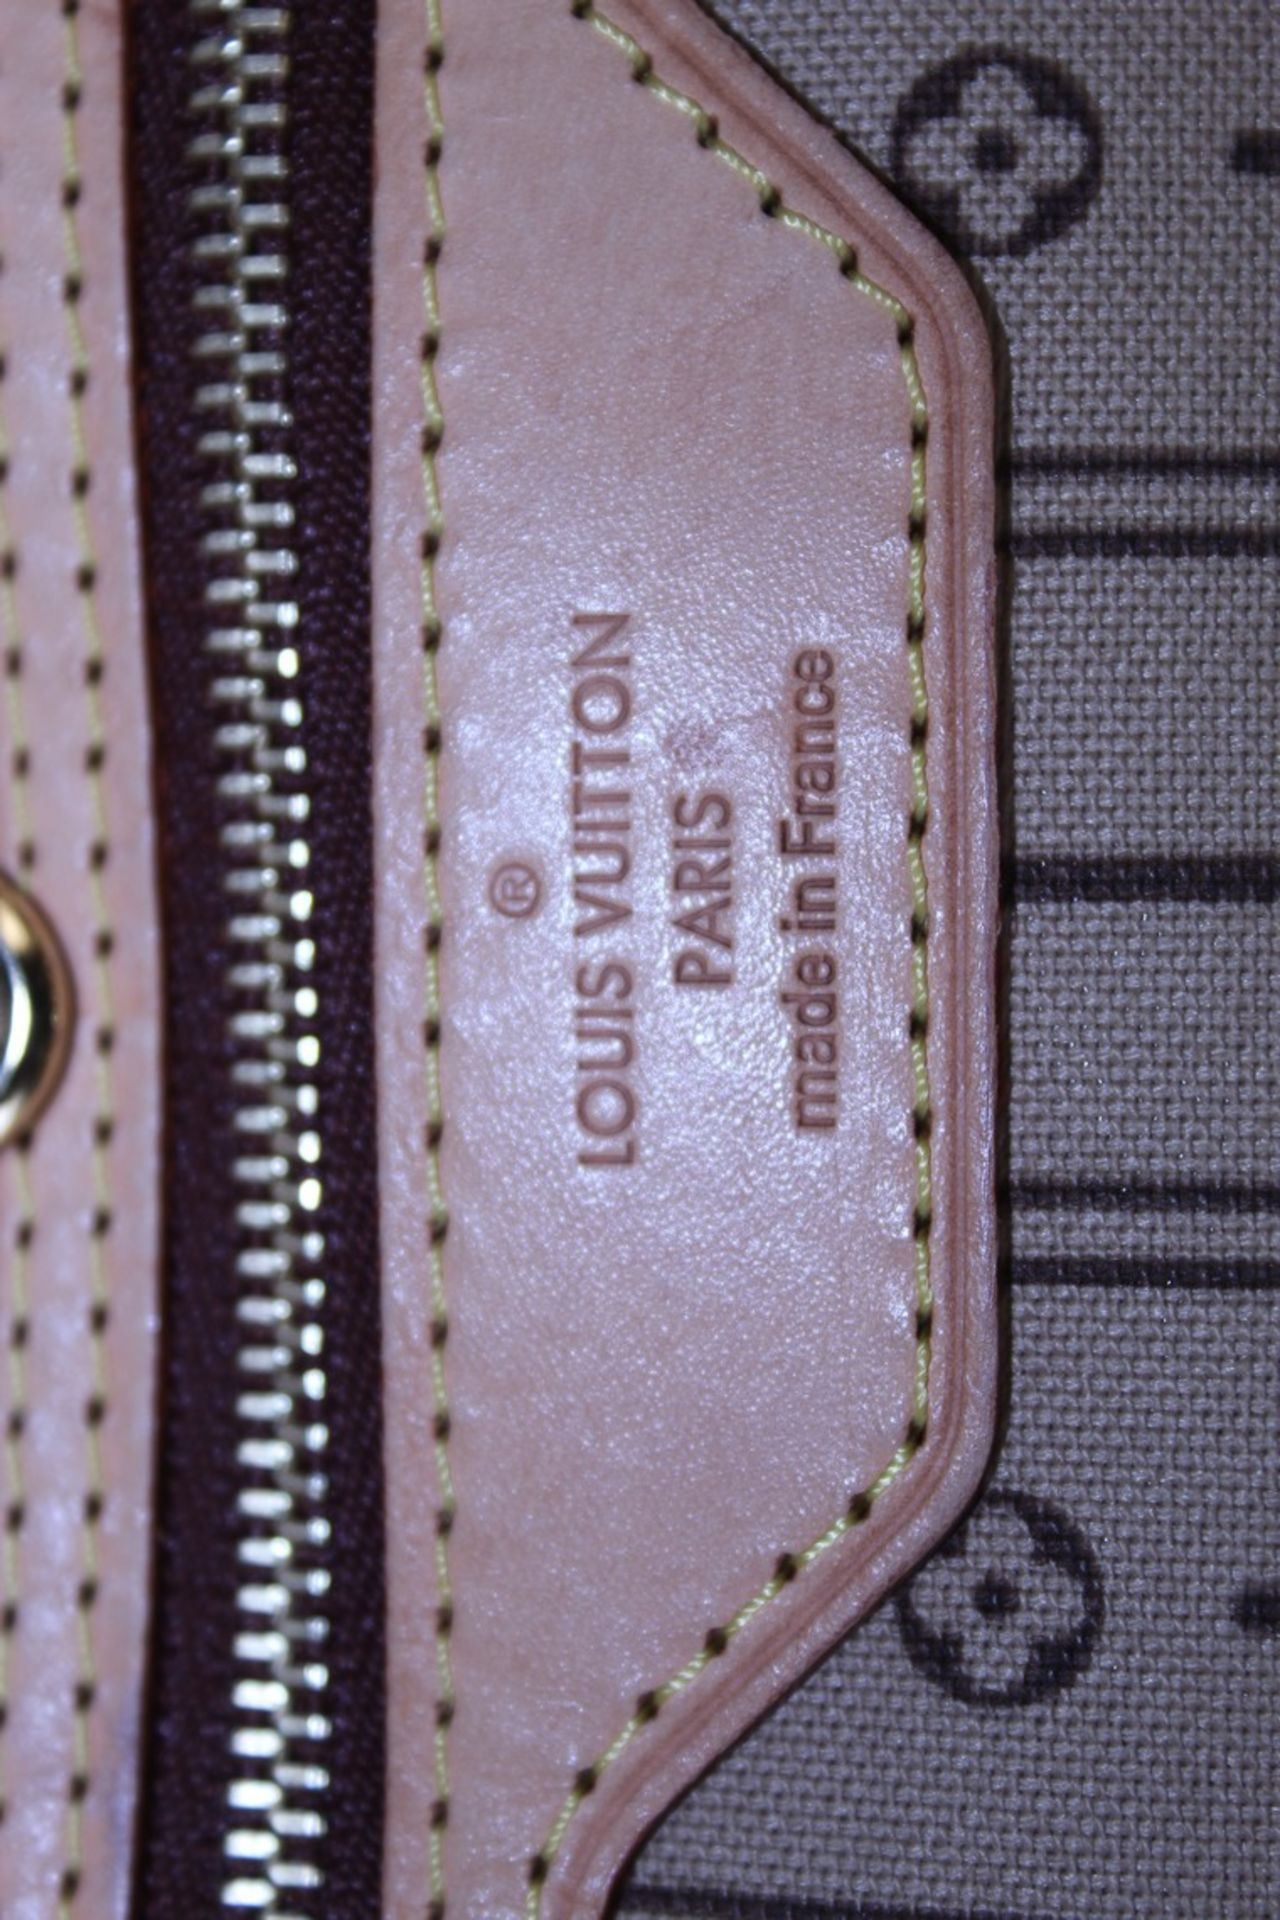 RRP £1500 Louis Vuitton Neverfull Handbag In Brown Coated Monogram Canvas With Vachetta Handle ( - Image 5 of 6